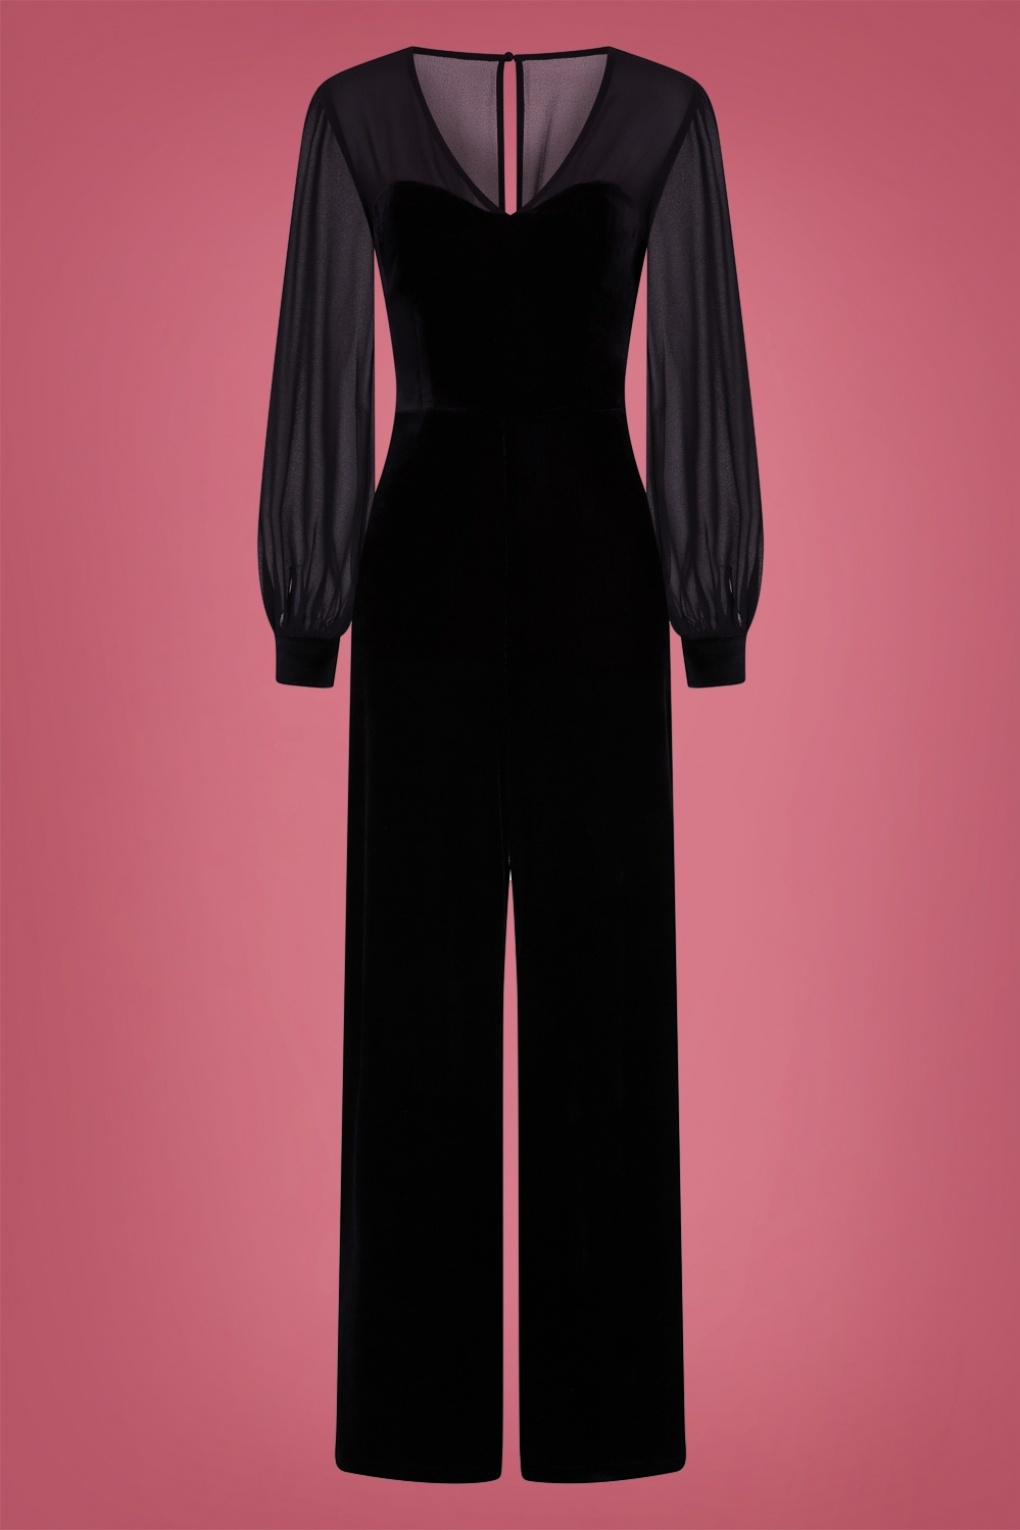 Vintage High Waisted Trousers, Sailor Pants, Jeans 50s Arionna Velvet Jumpsuit in Black £61.70 AT vintagedancer.com